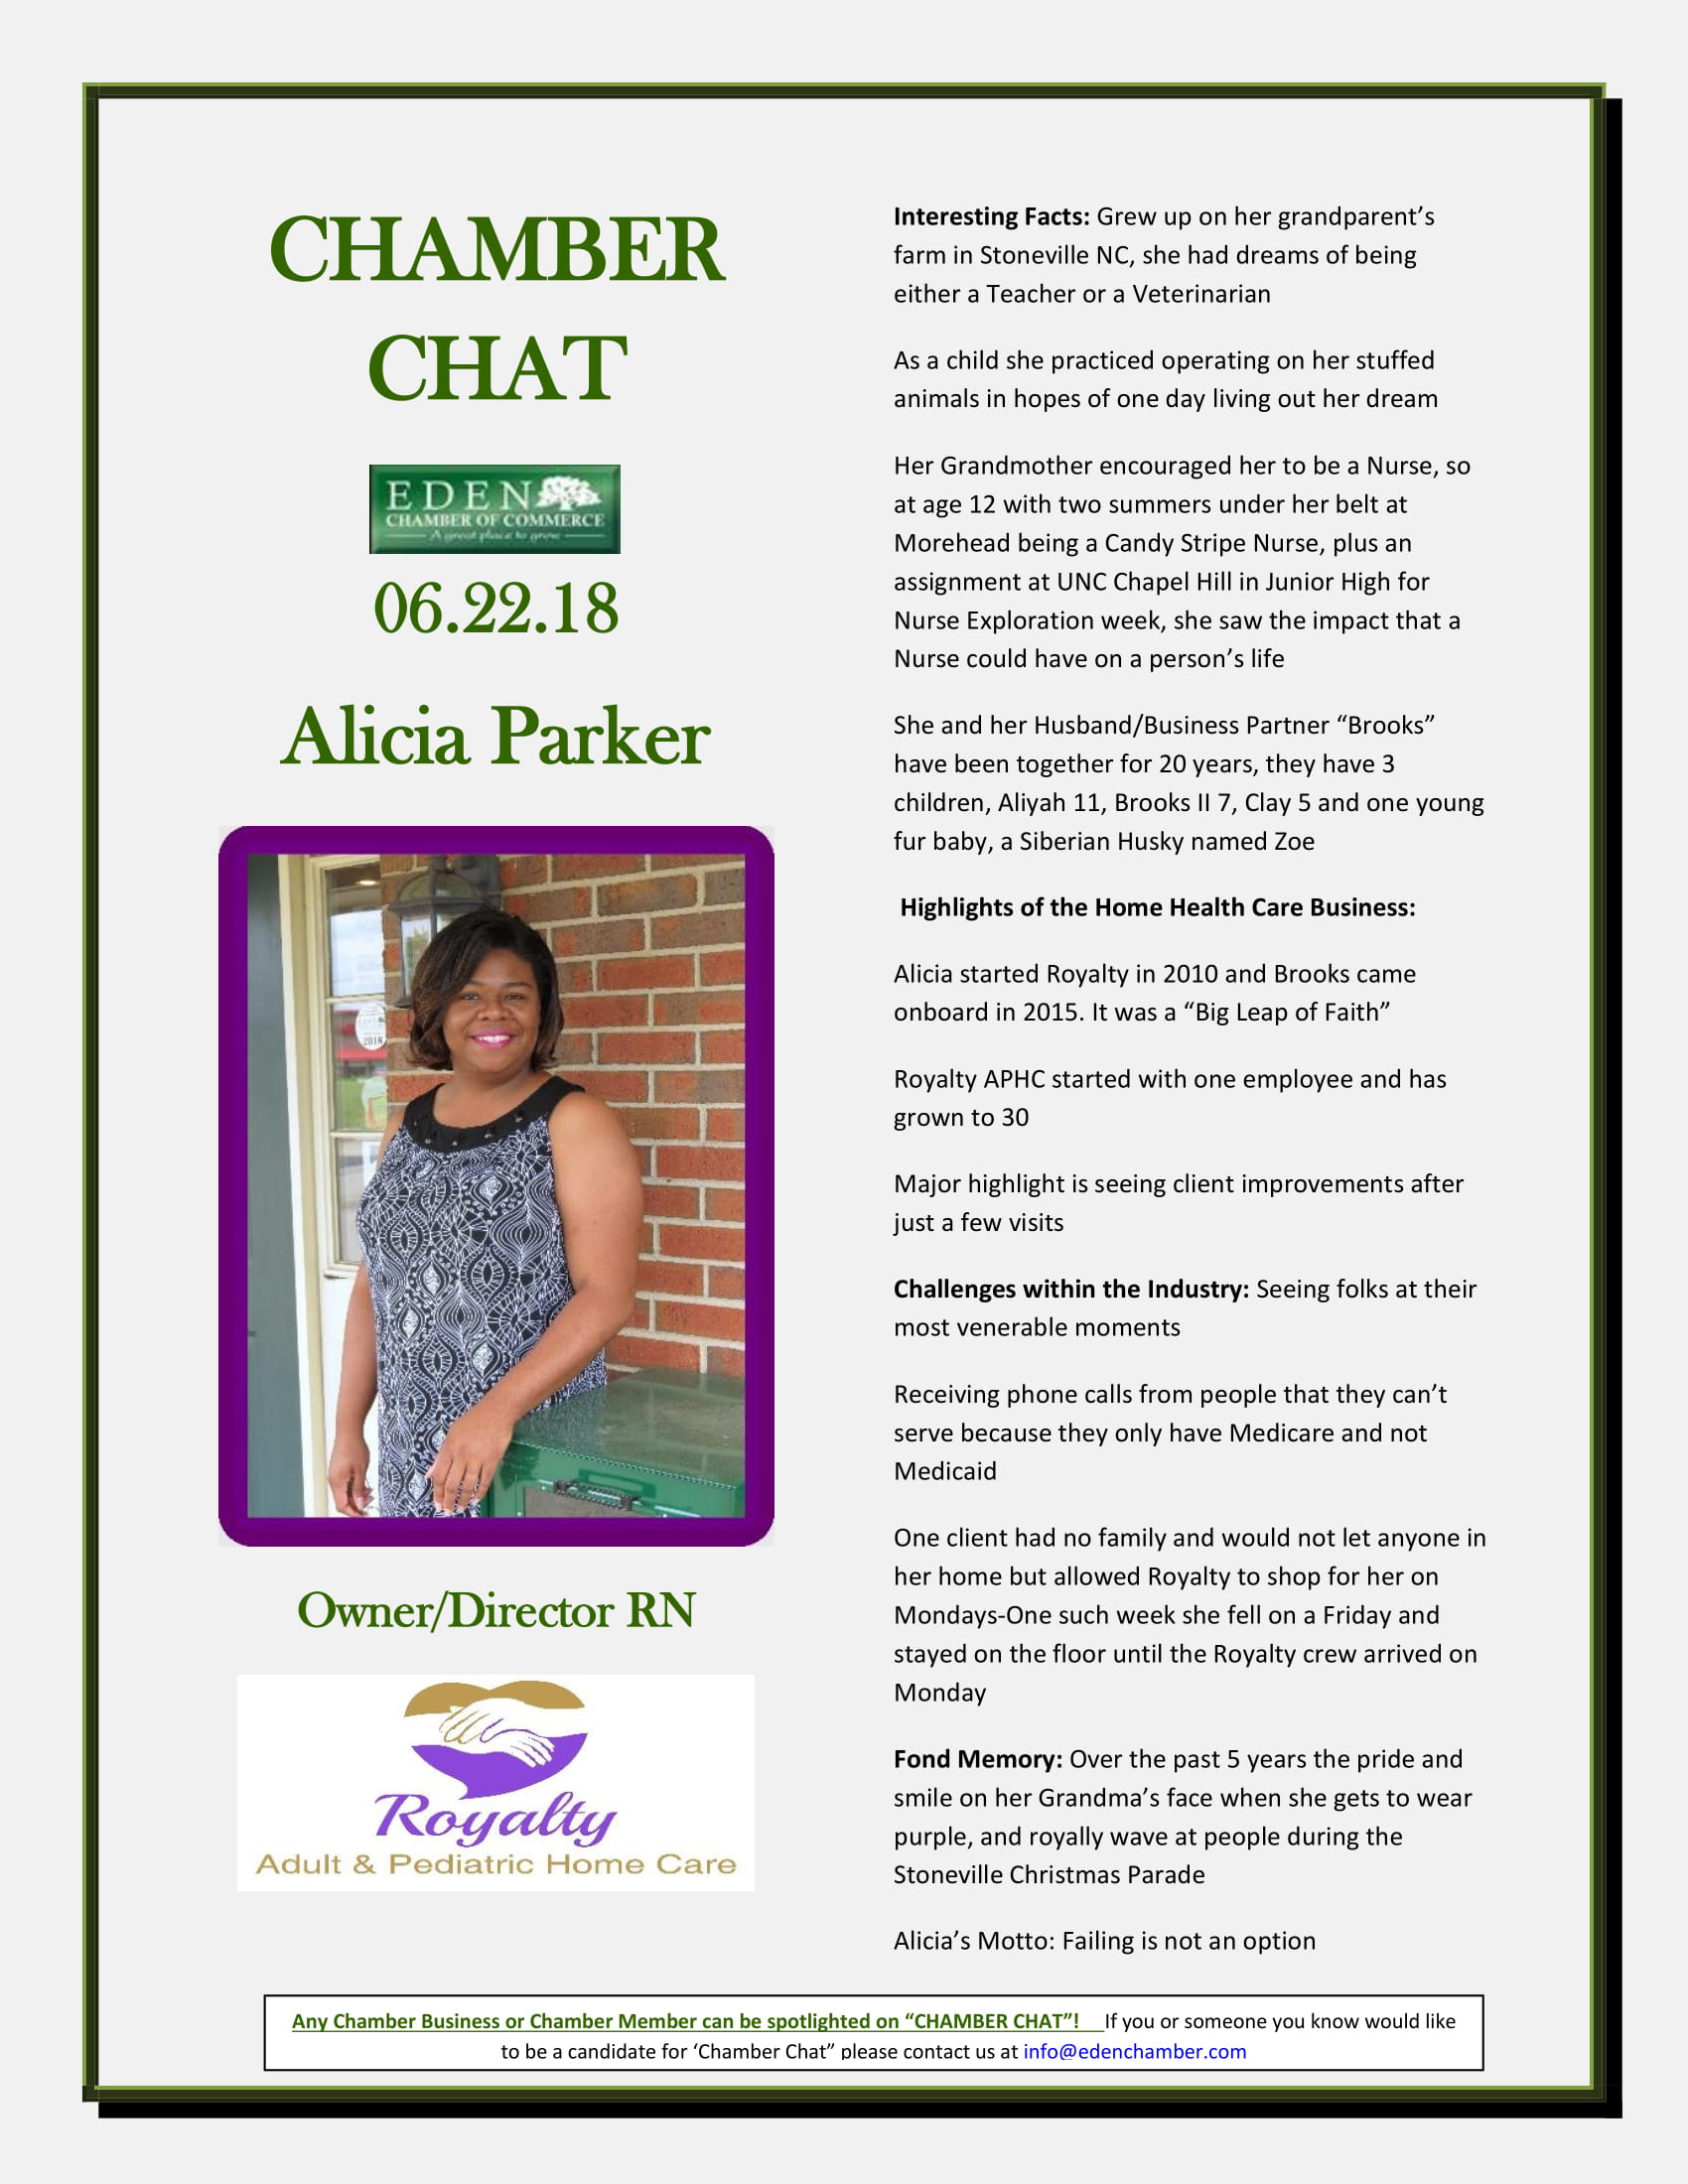 CHAMBER-CHAT--Royalty-Adult-Care-Alicia-Parker-06.22.18-1.jpg